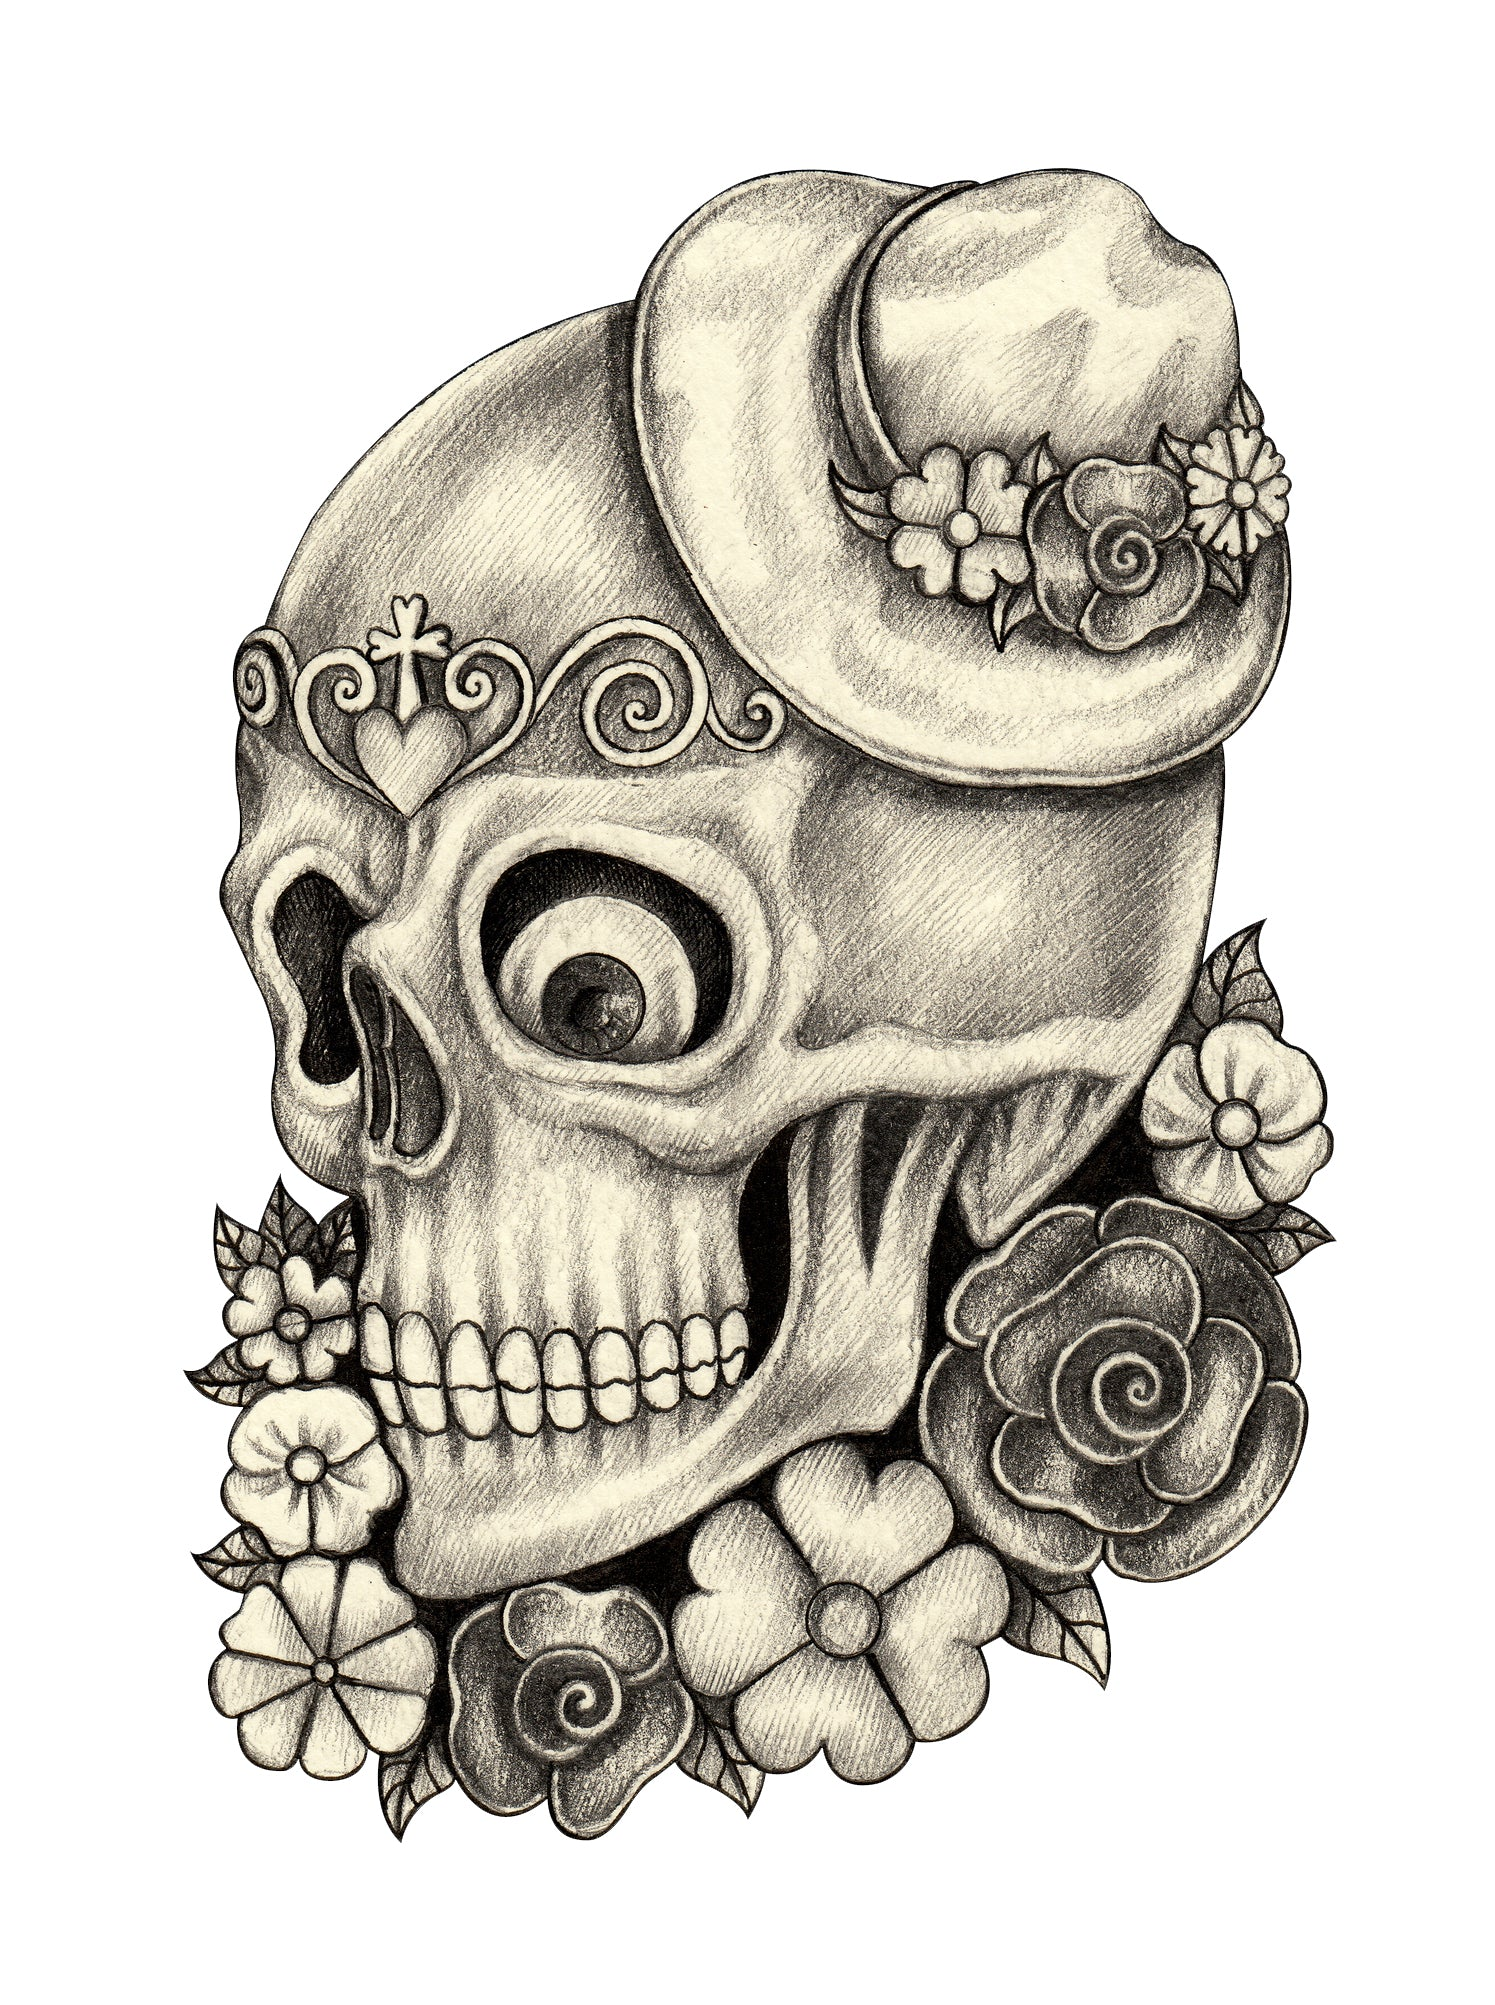 Pencil Sketch Floral Dia de los Muertos Skull with Hat #2 Vinyl Decal Sticker